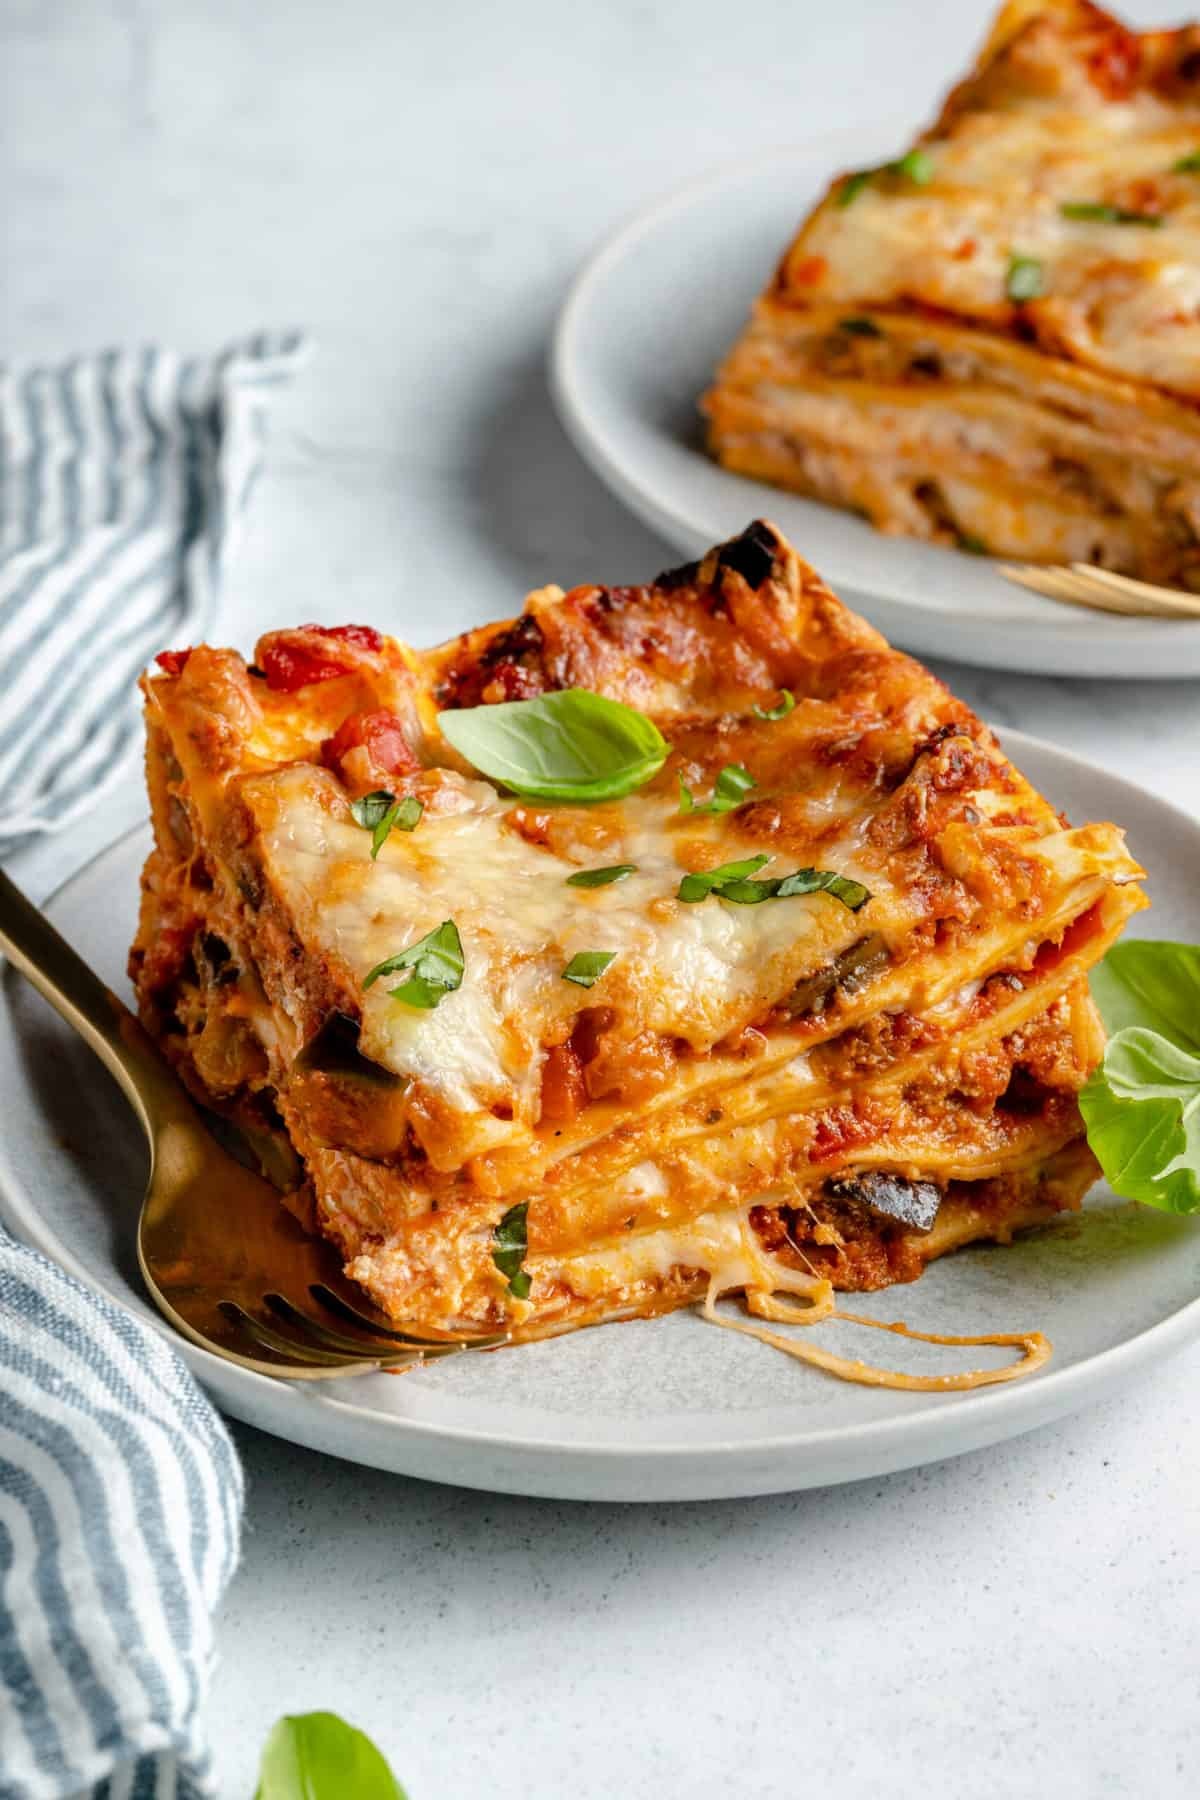 A plate of cheesy lasagna with basil.